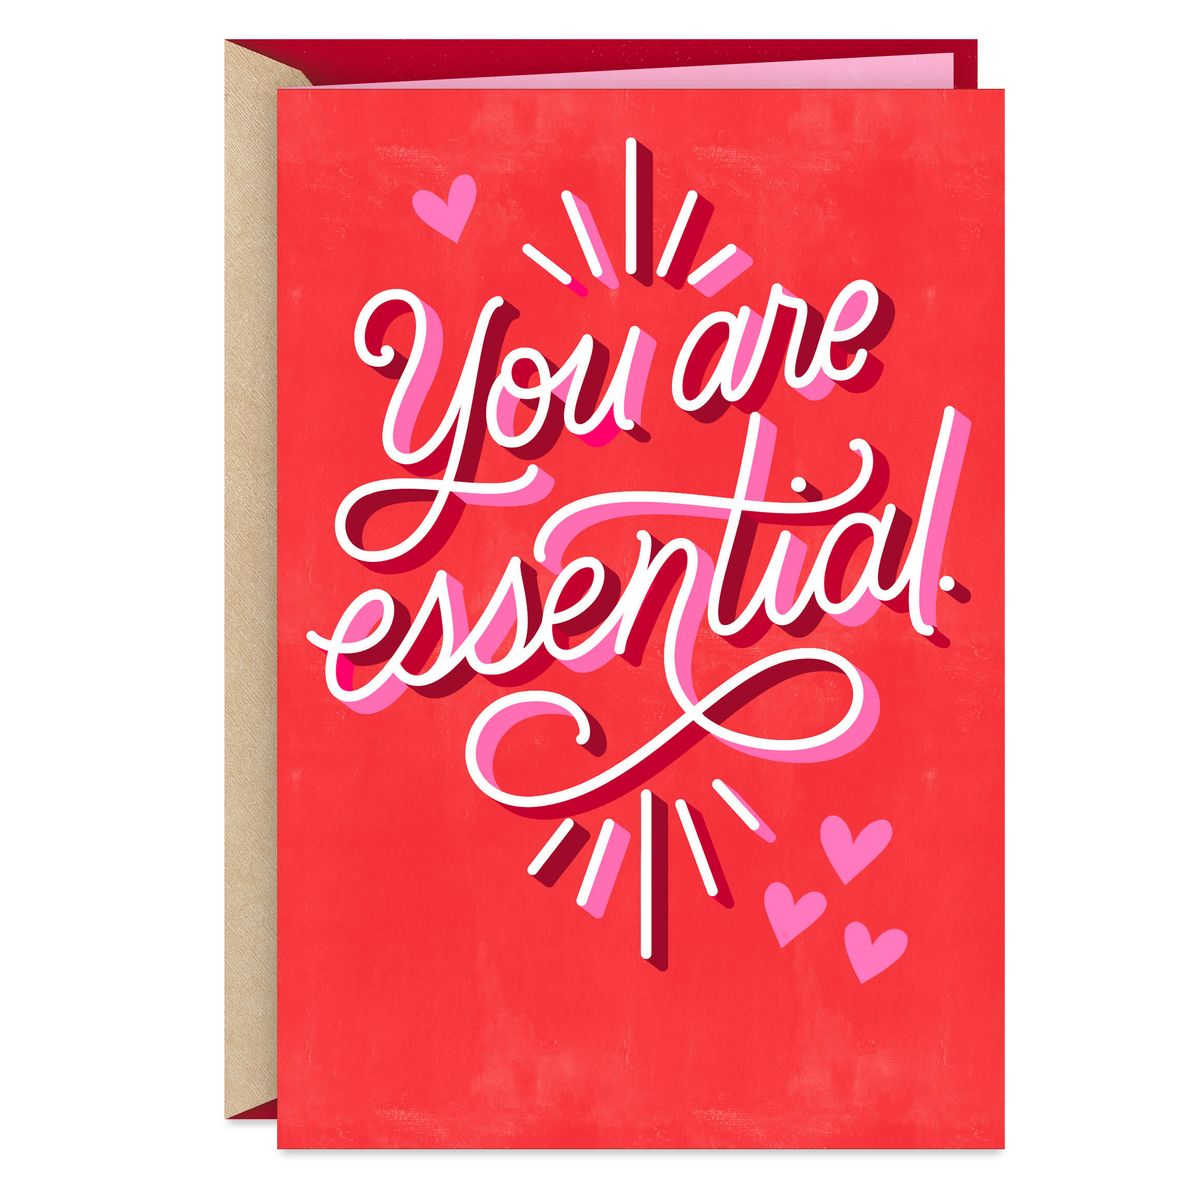 "A card that says ""You are essential"" on the front."